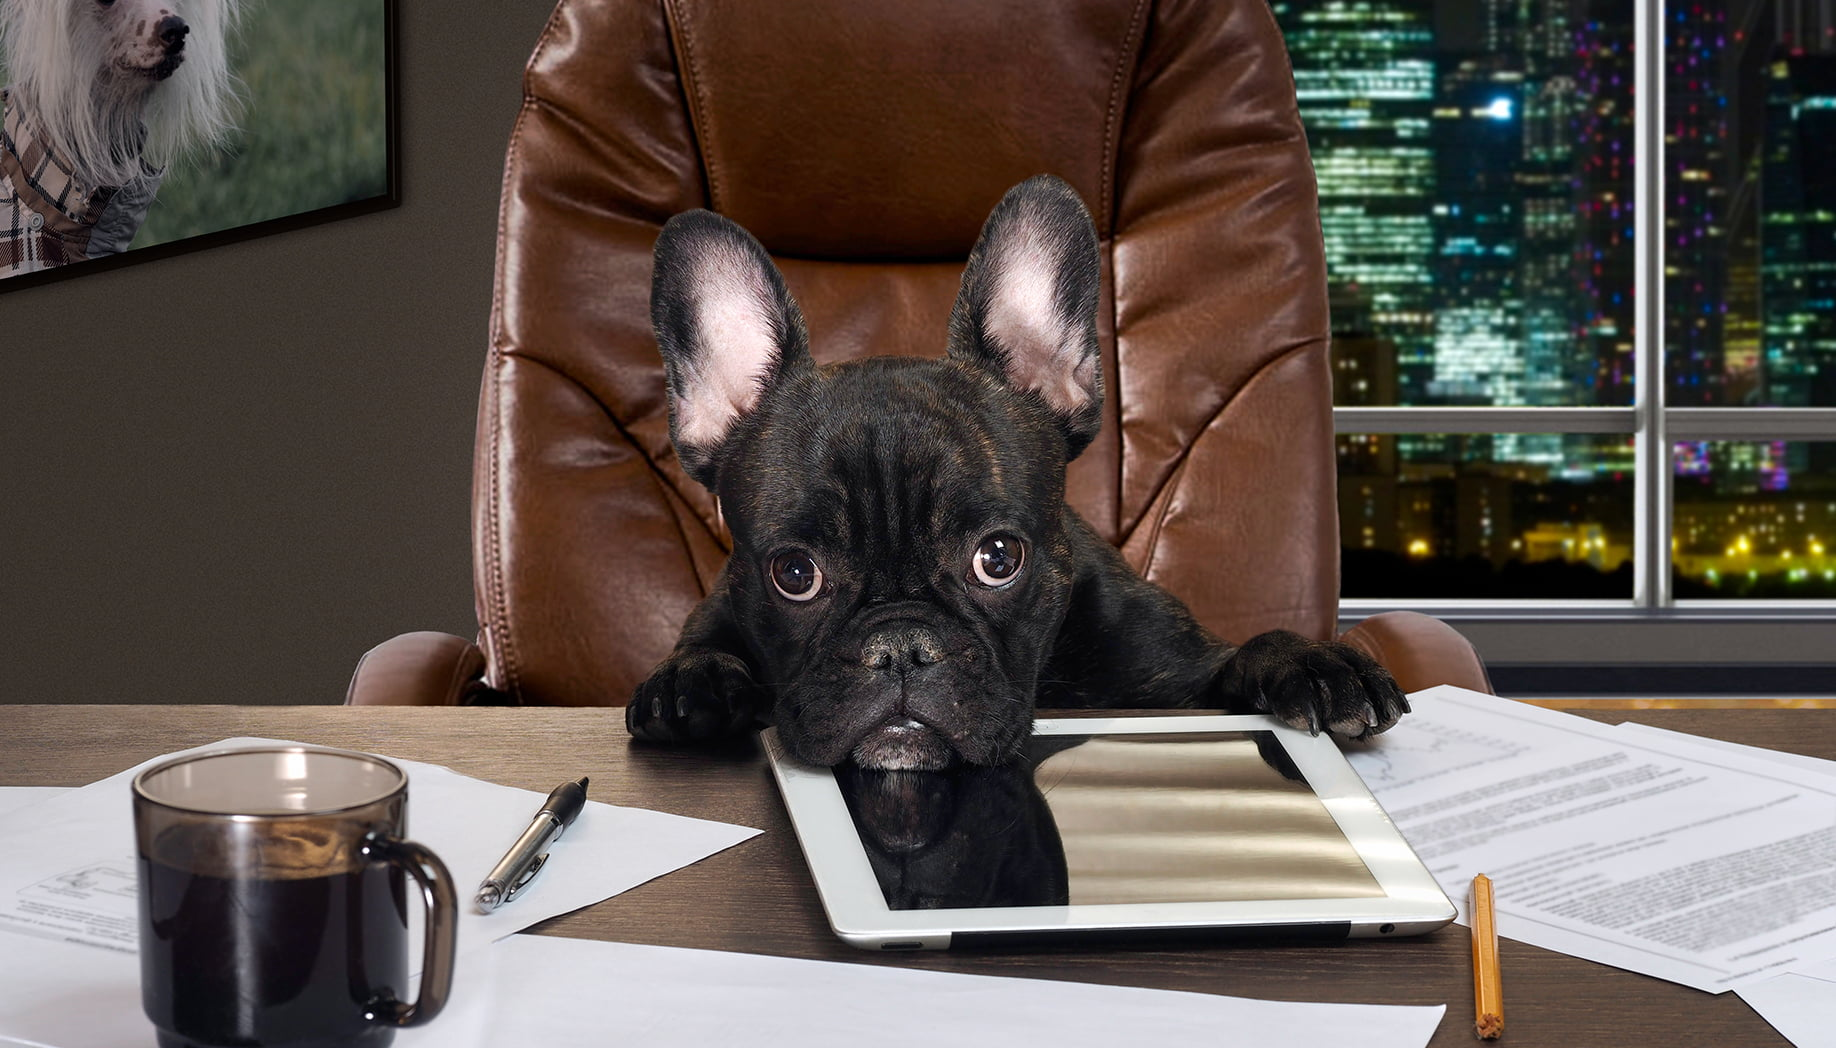 Want To Be Top Dog at Your Office? DO THIS!